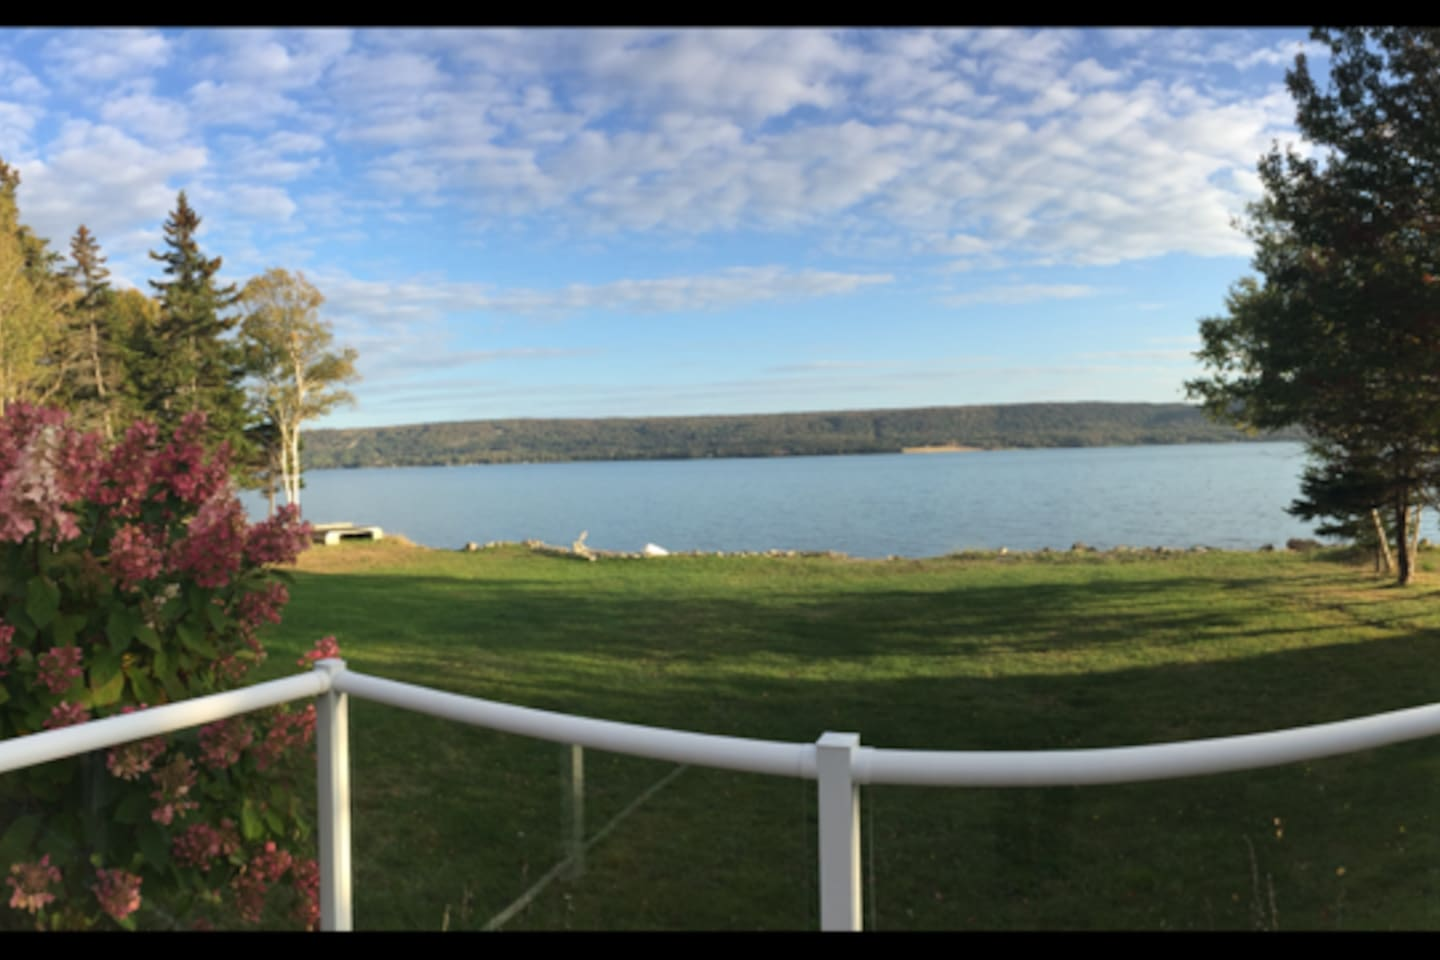 A view of the great Bras d'Or Lake from the front deck